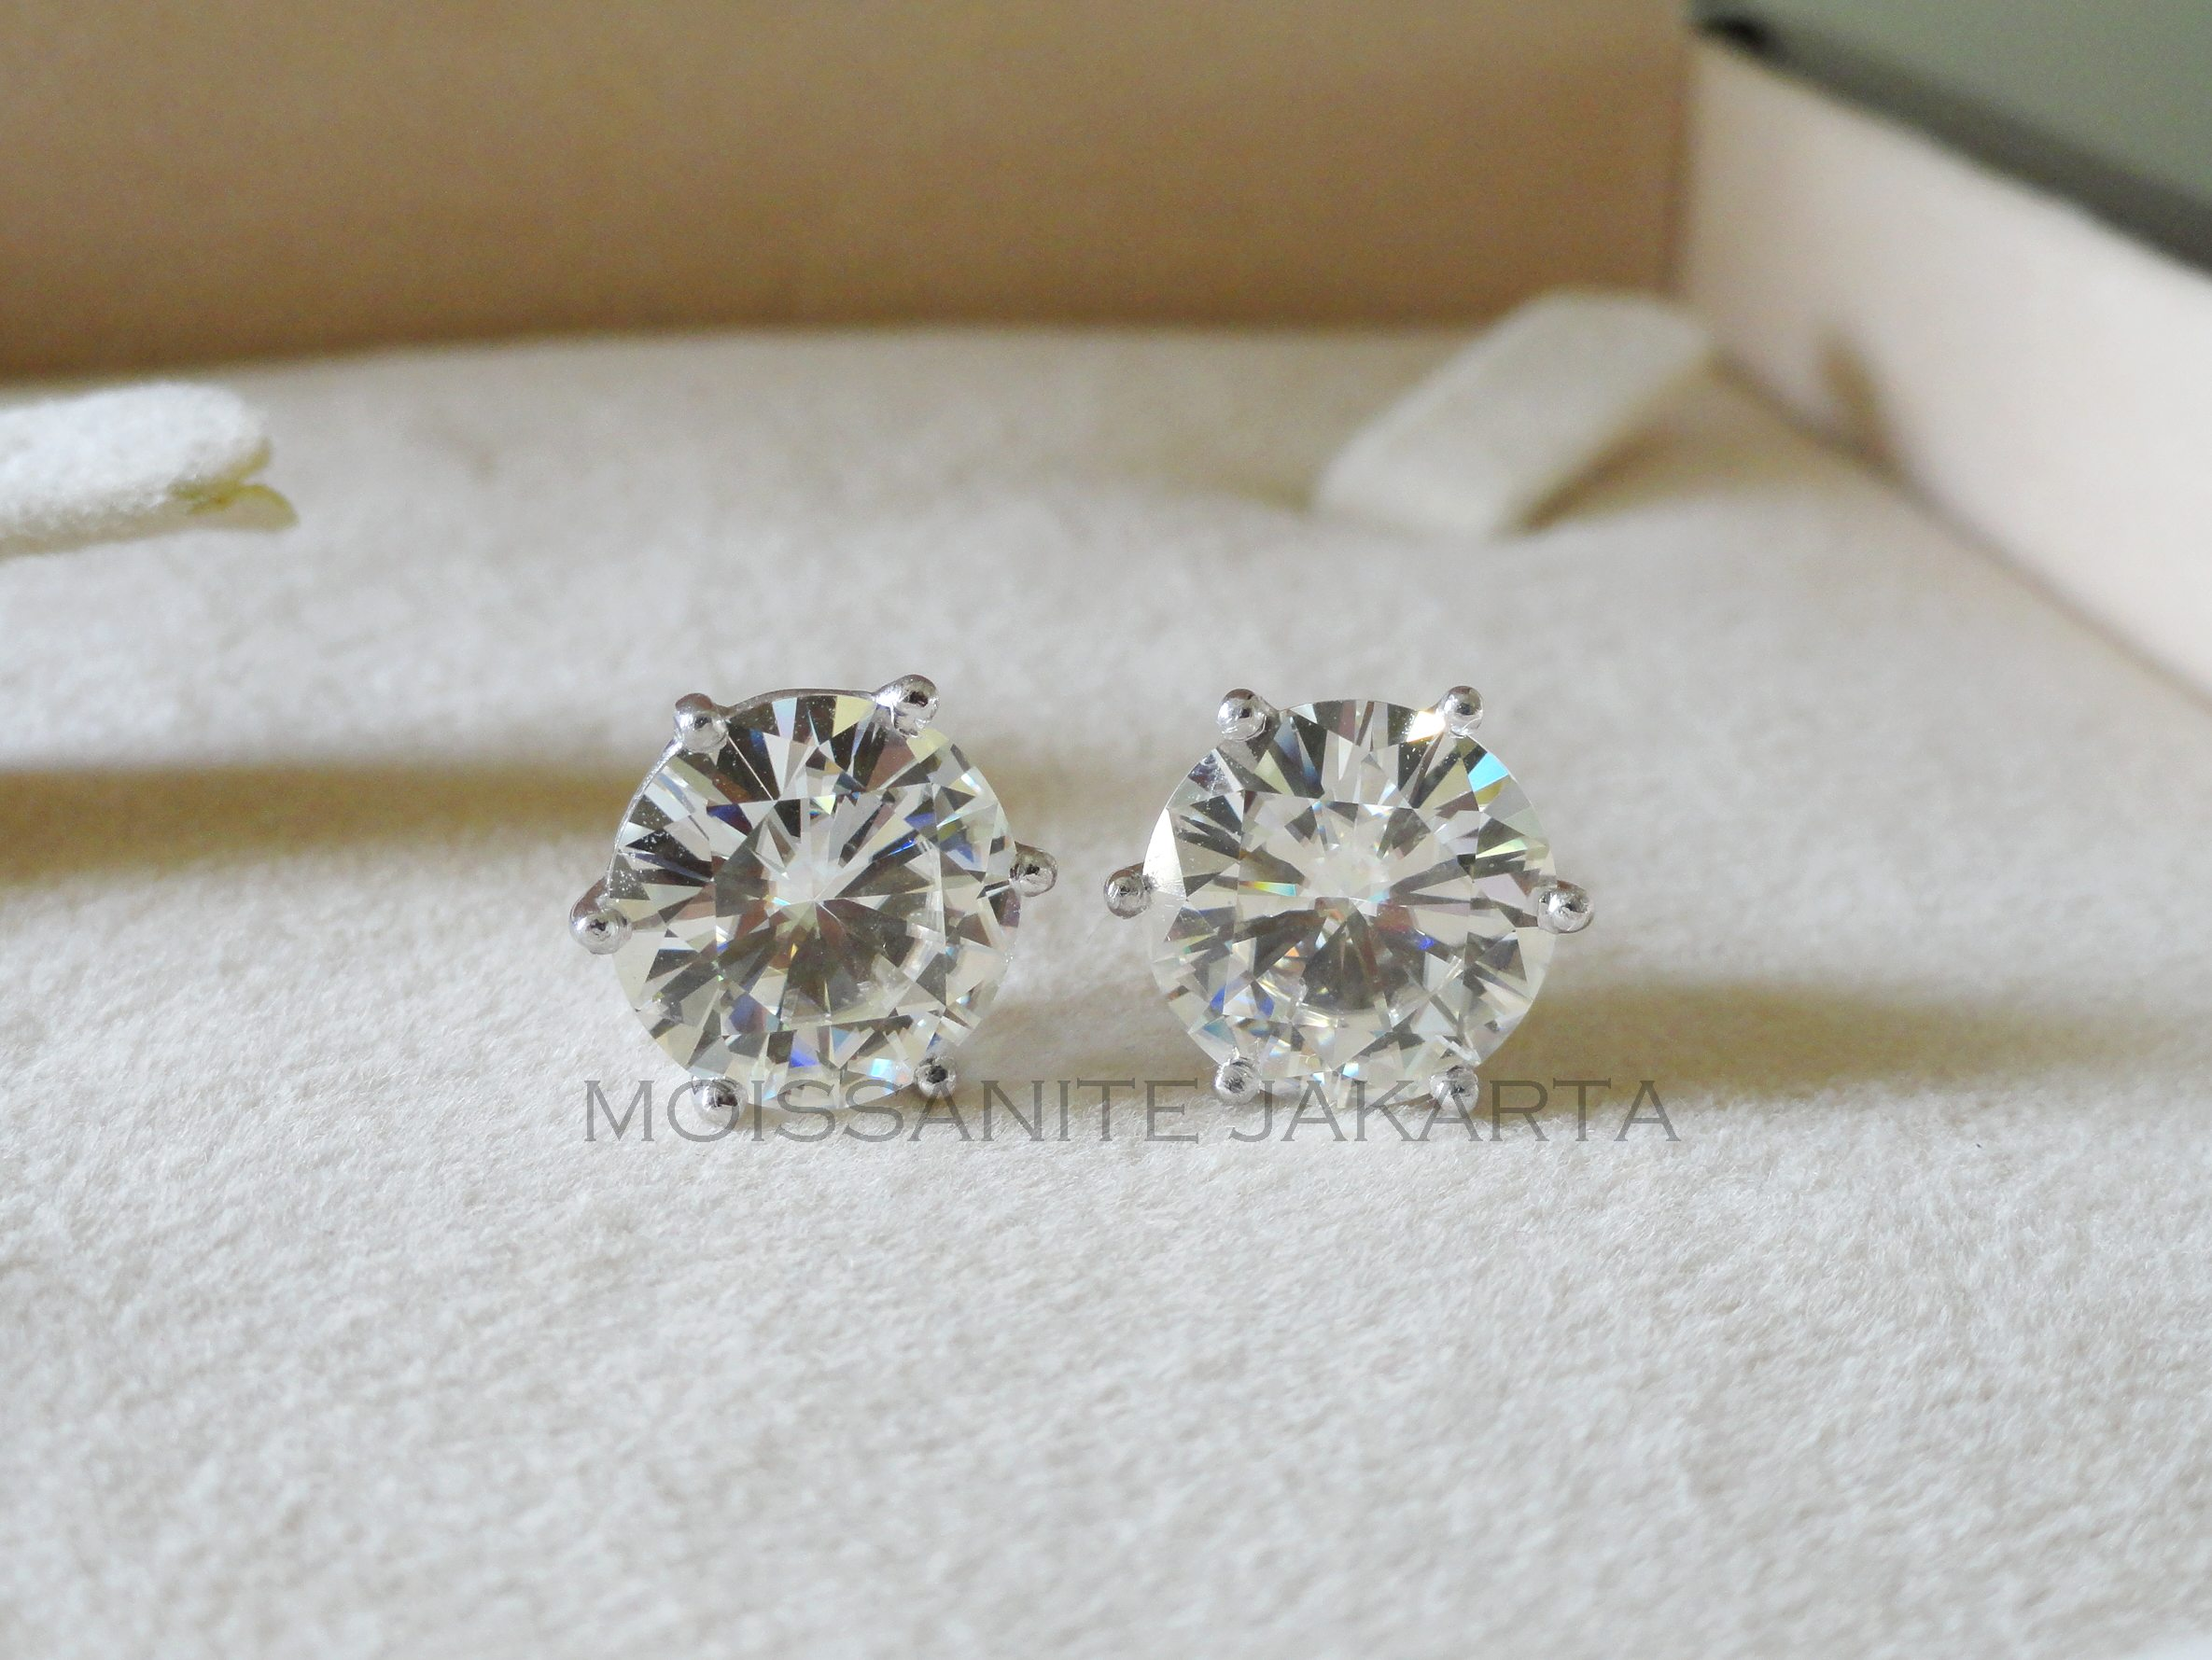 moissanite round accents rae earrings ring diamond primrose morganite product jewelry gold engagement dianna rose